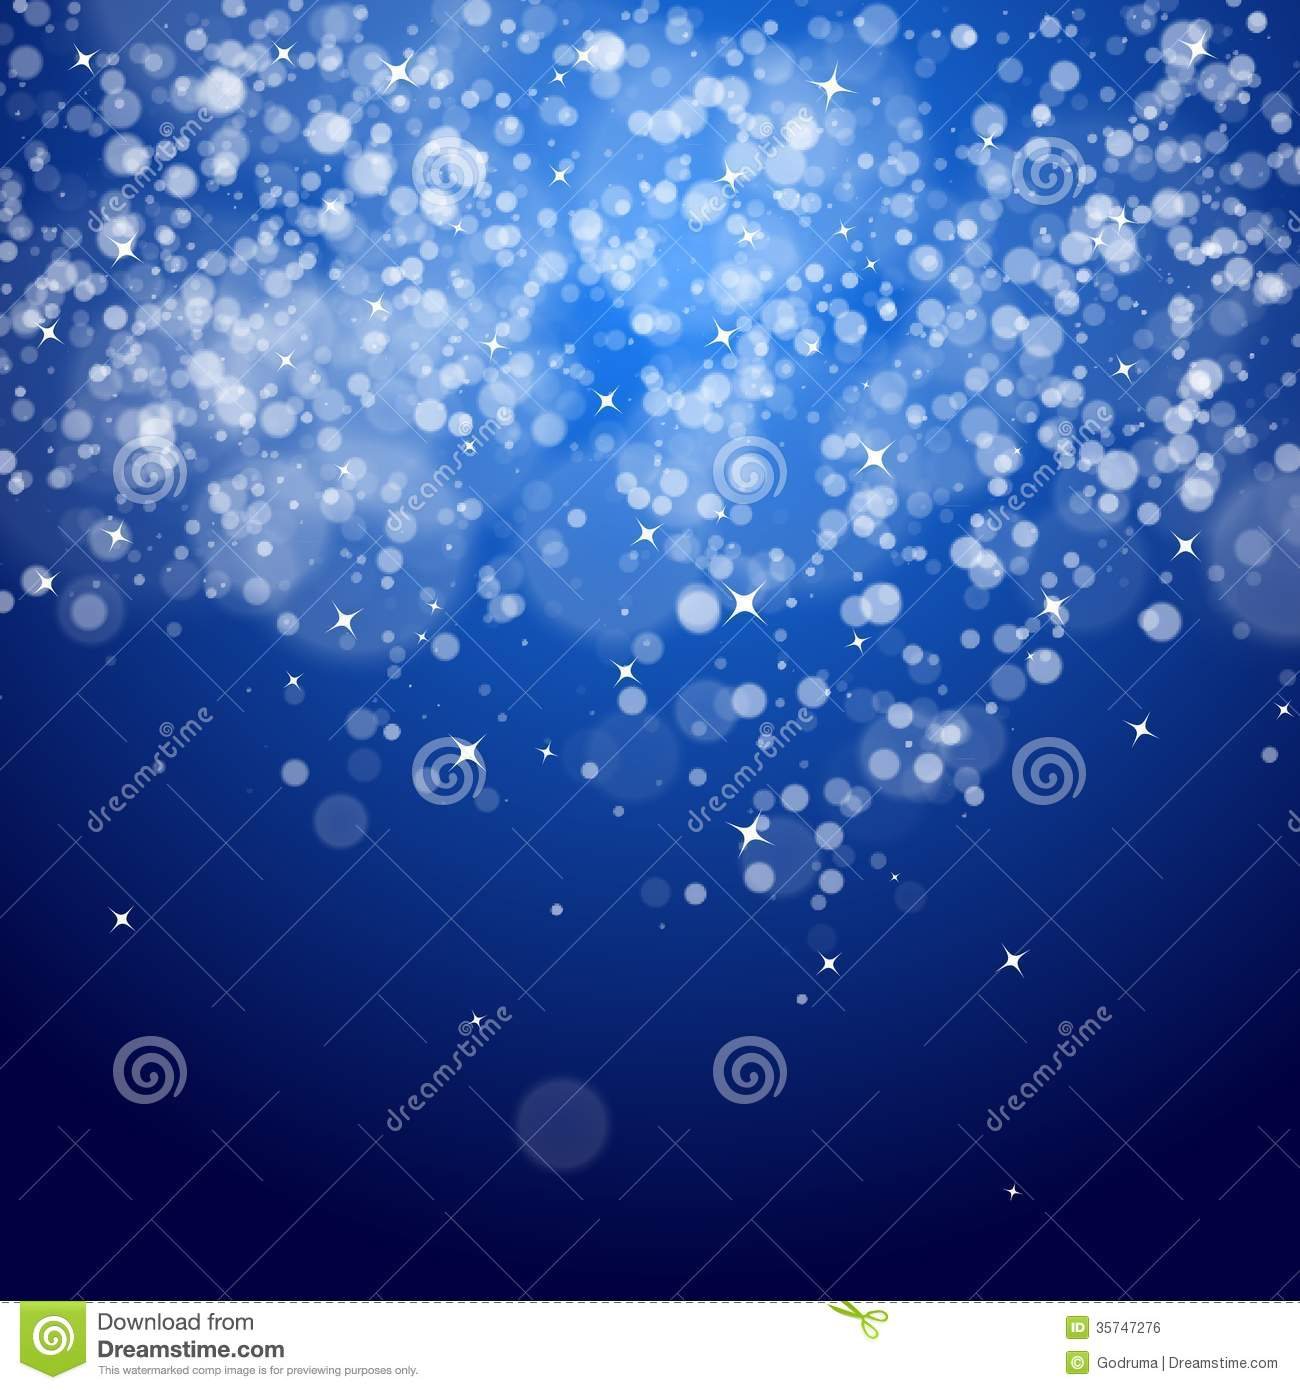 Dark Blue Night Christmas Background Stock Vector - Image ...